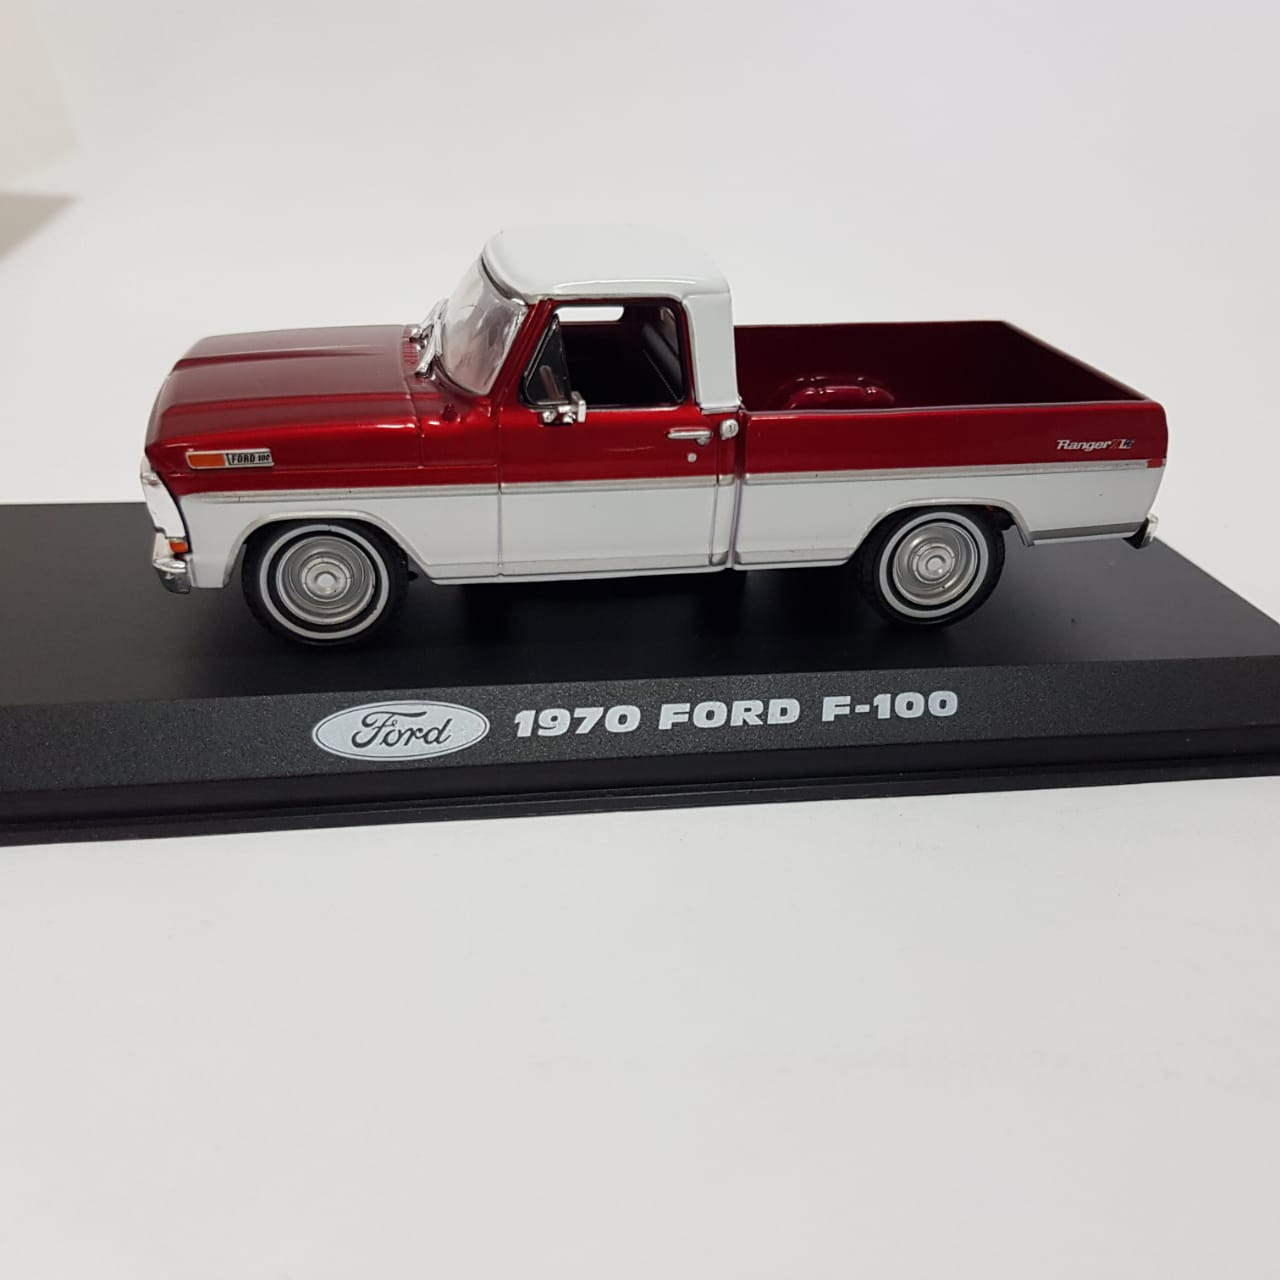 Miniatura Ford F-100 1970 Vermelha 1/43 Greenlight